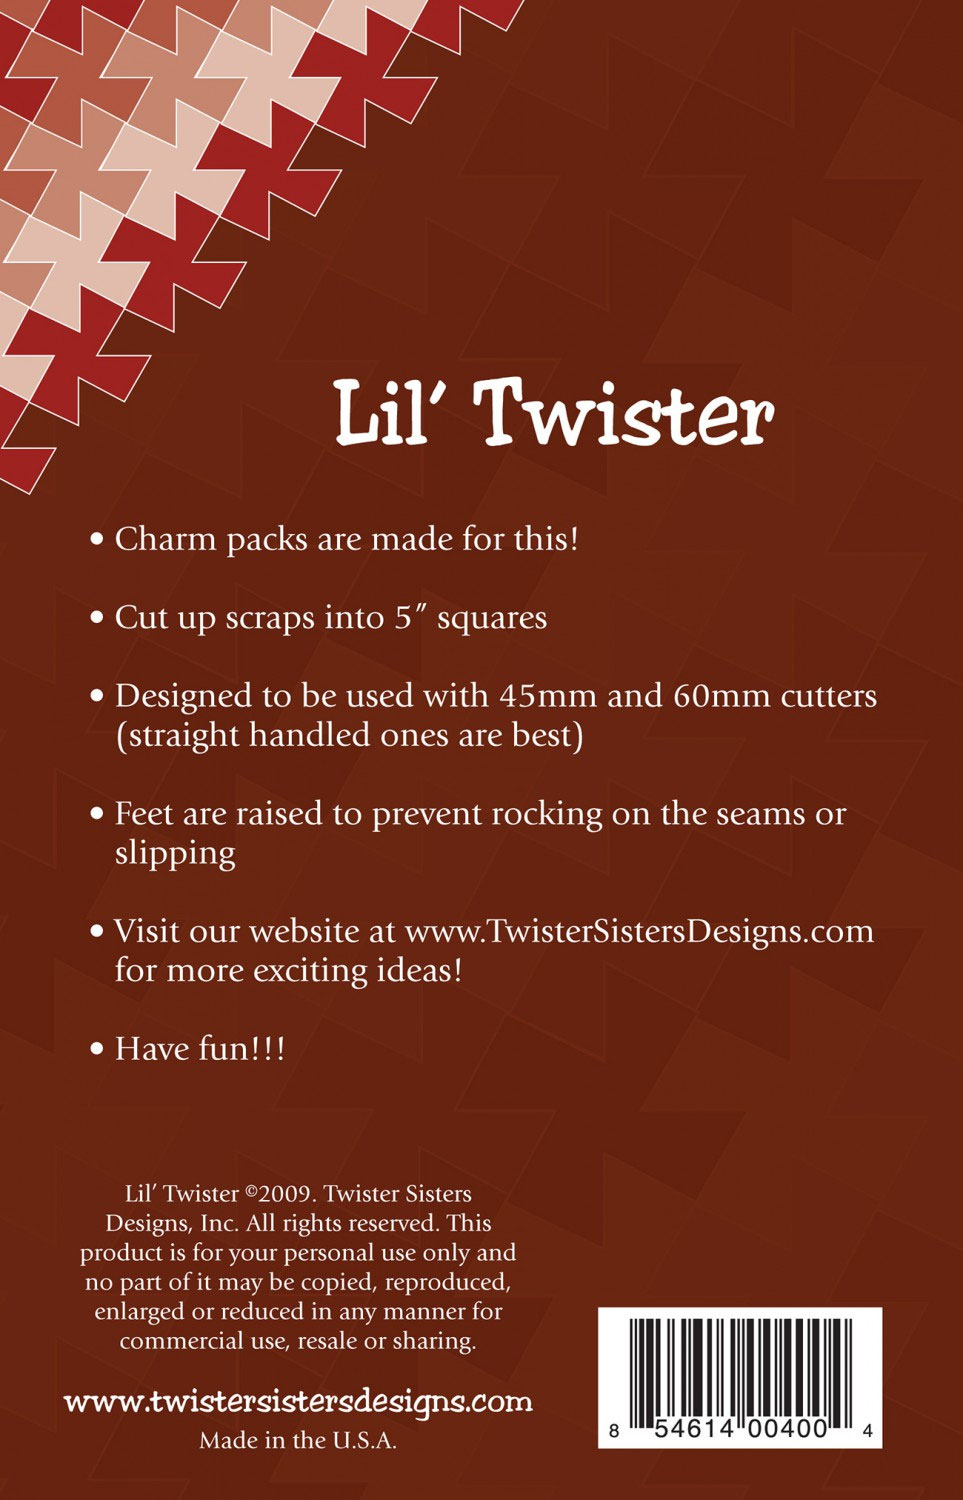 Lil Twister Pinwheel from Twister Sisters backcover